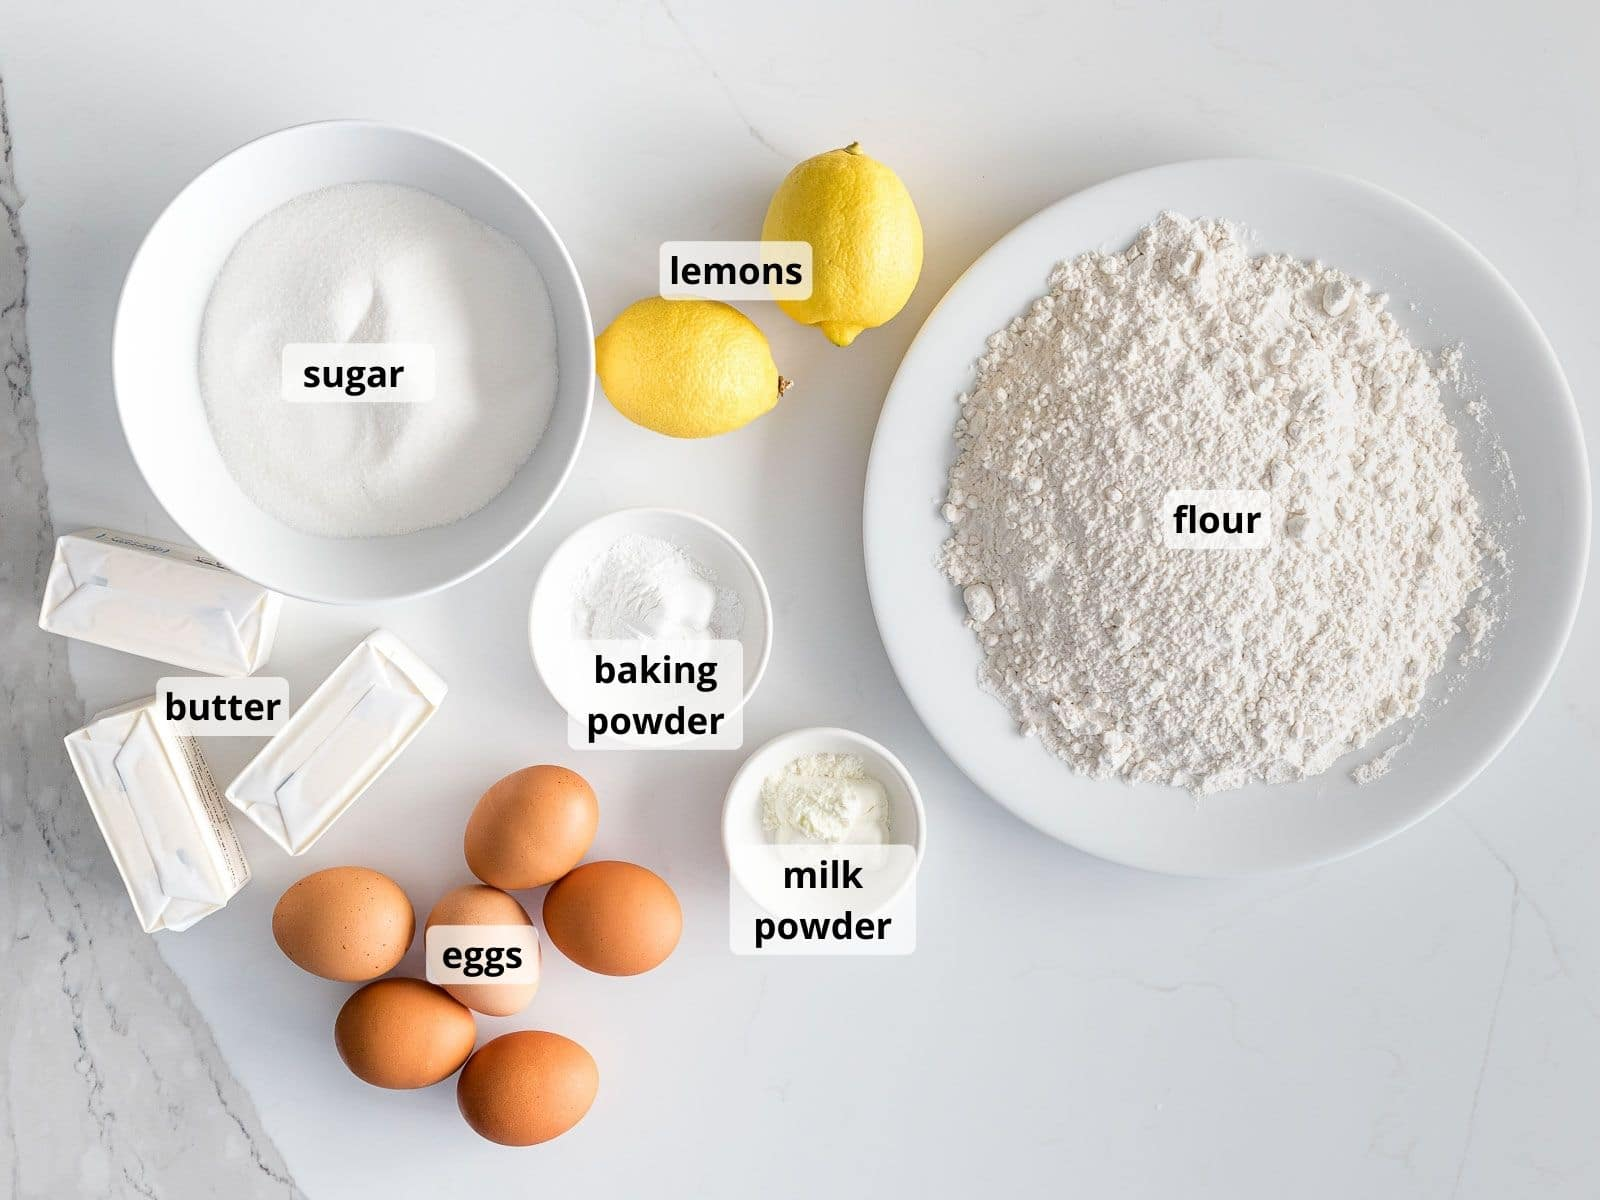 labeled ingredients for lemon pound cake in white bowls on a white background